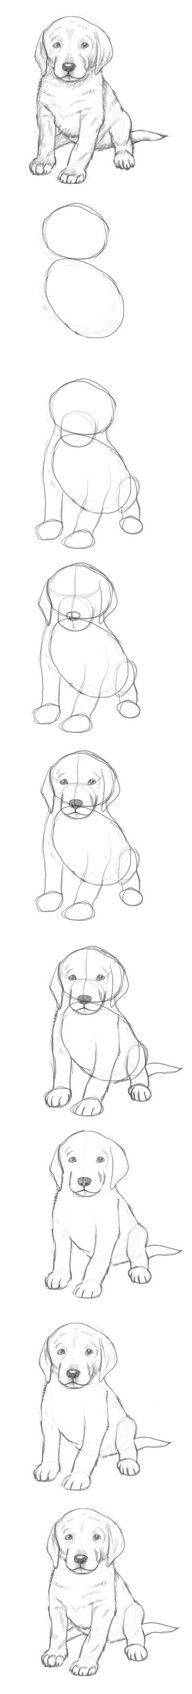 learn how draw a puppy